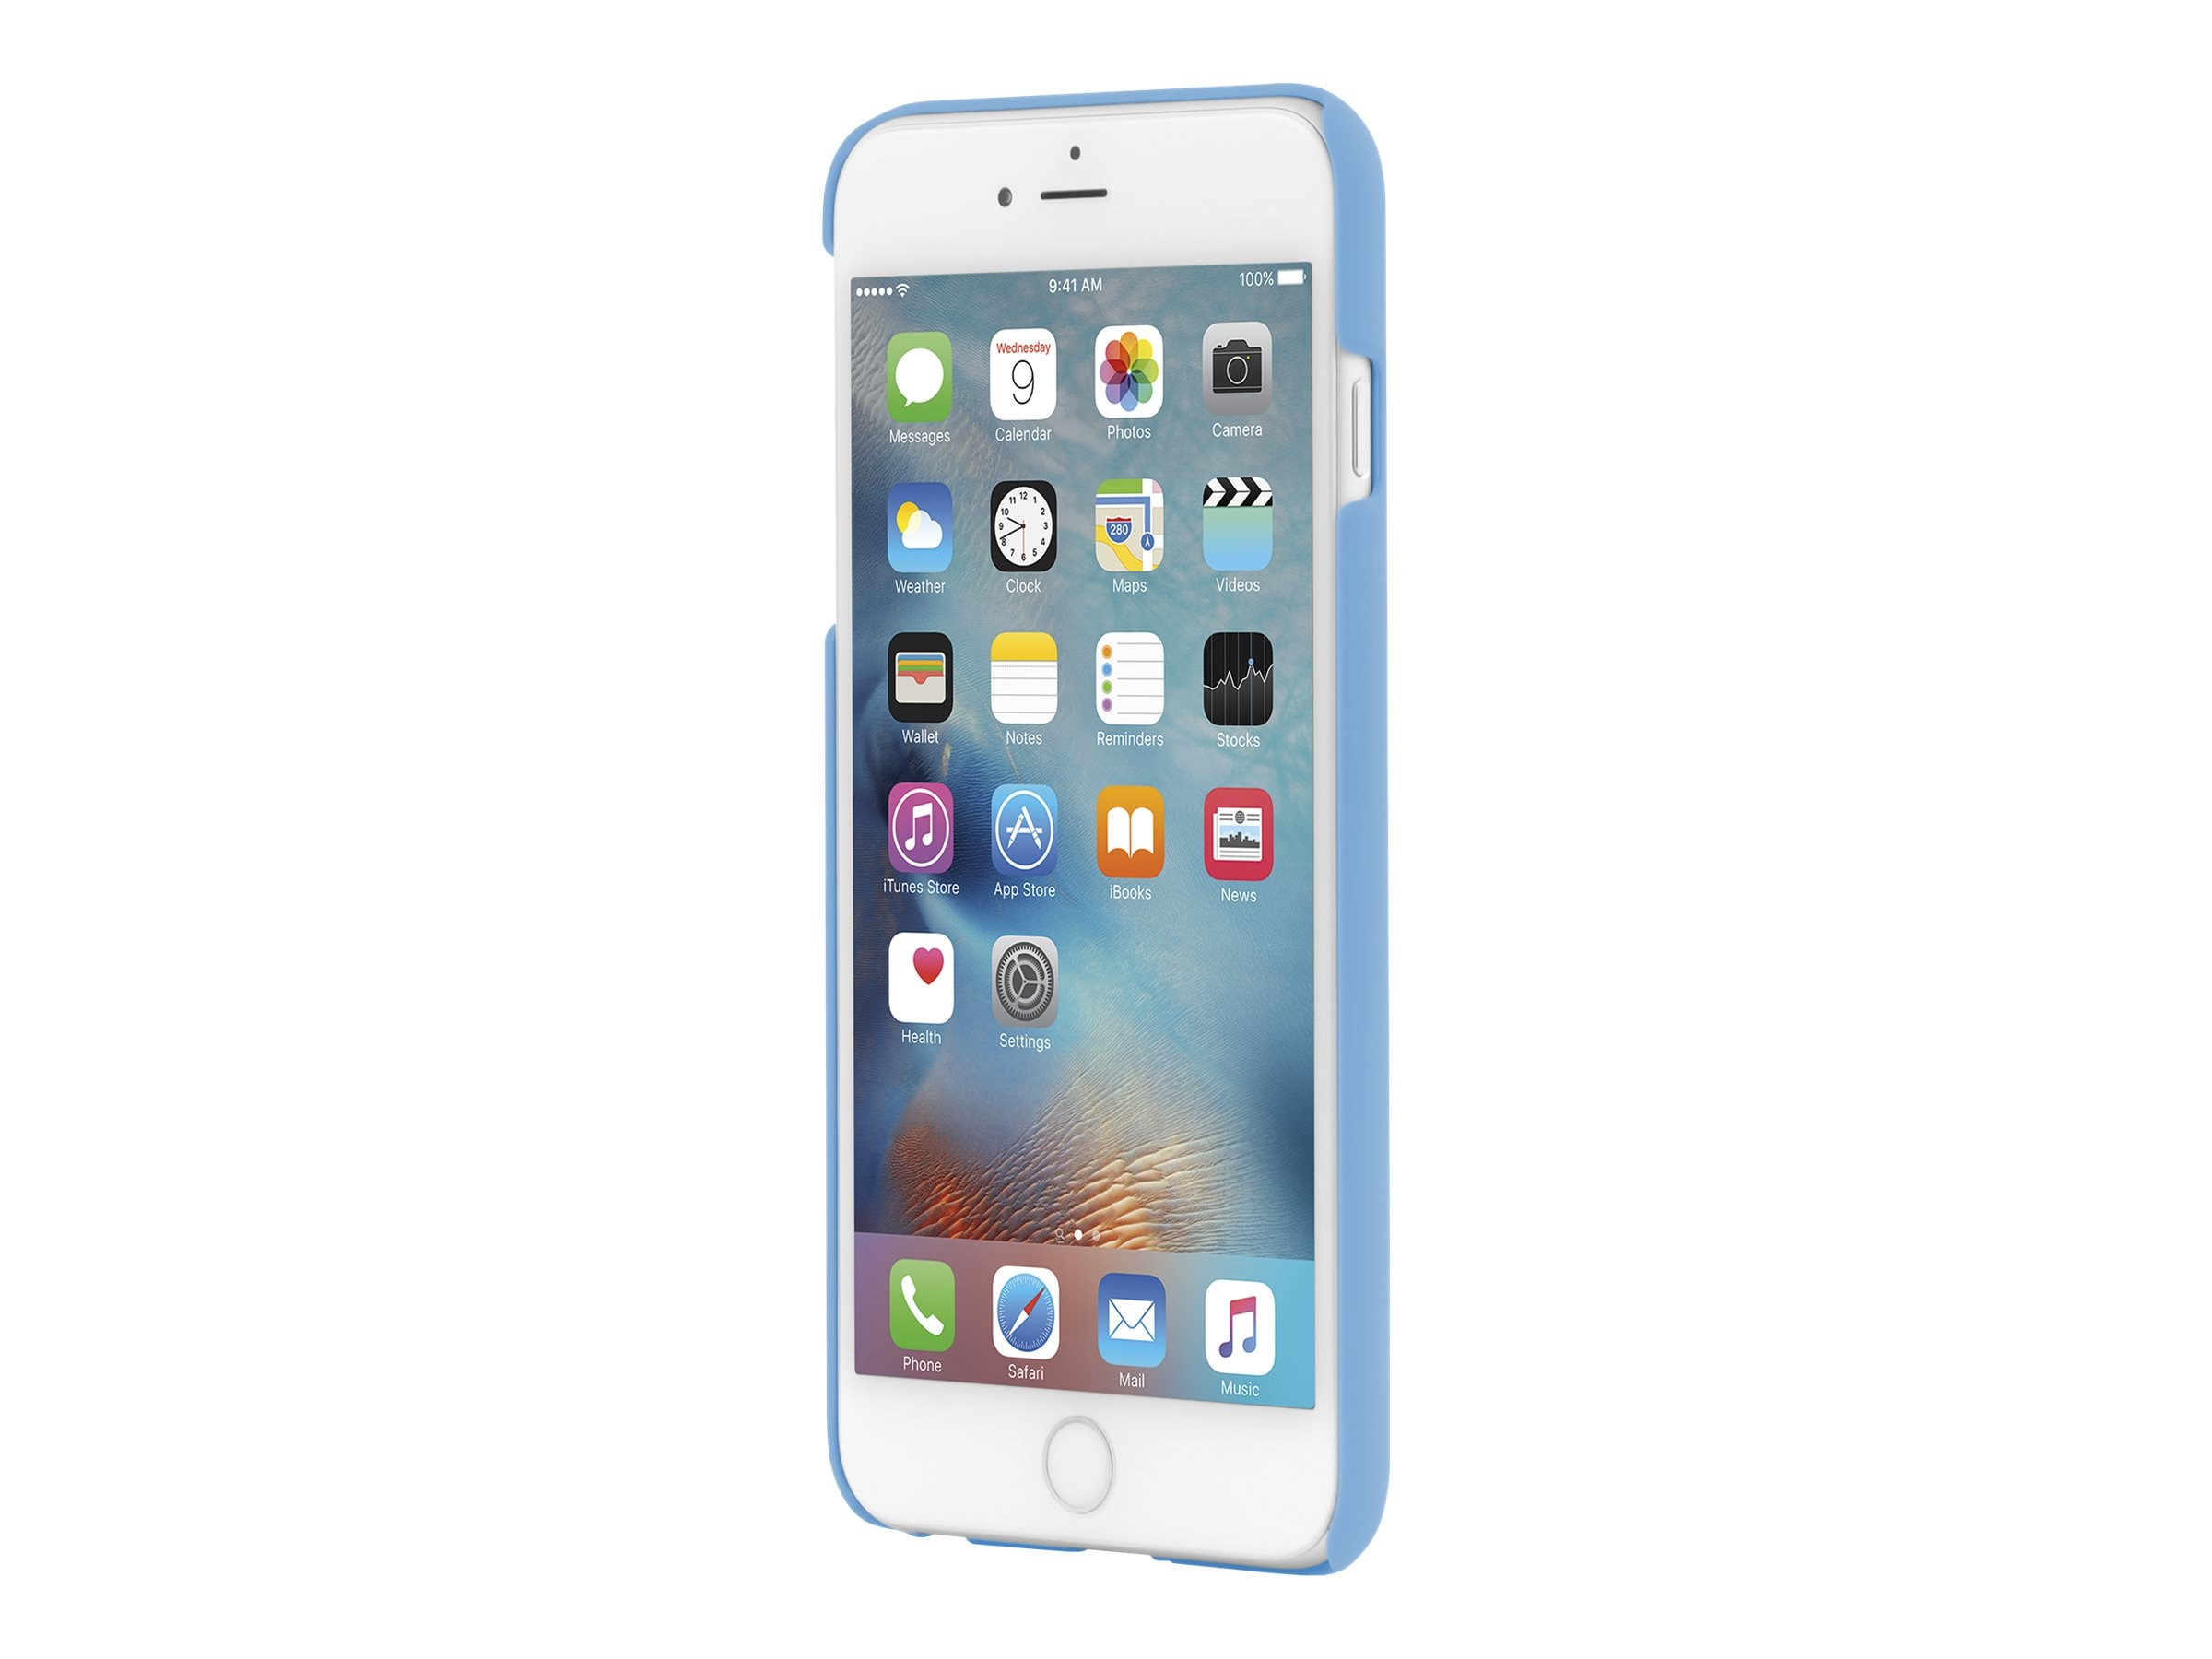 Incipio Feather Ultra Thin Snap-On Case for iPhone 6 Plus, Light Blue